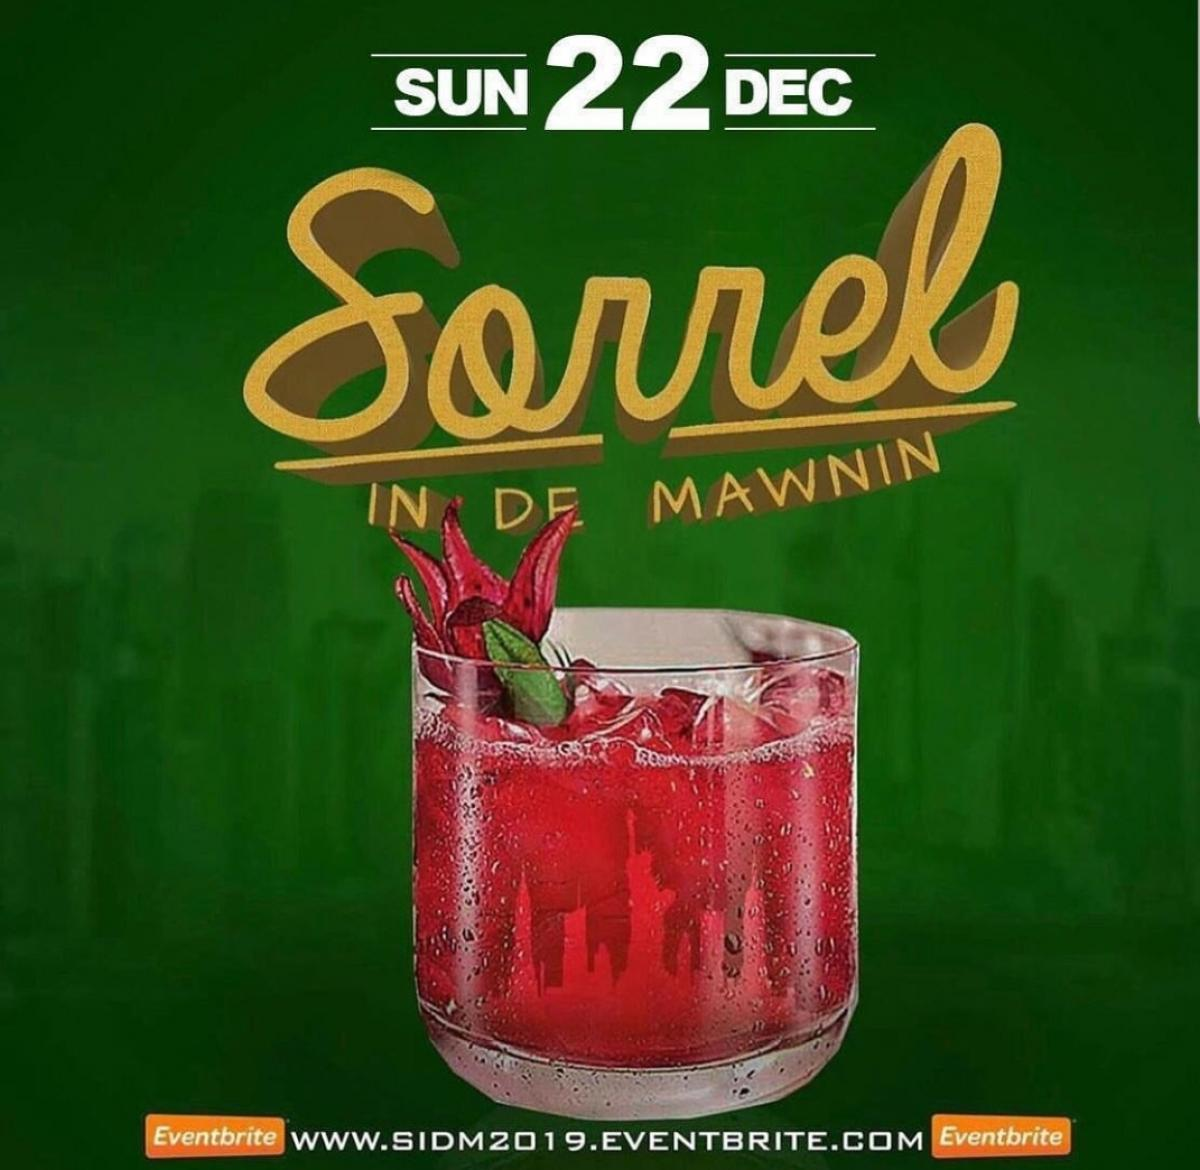 Sorrel In De Mawning flyer or graphic.